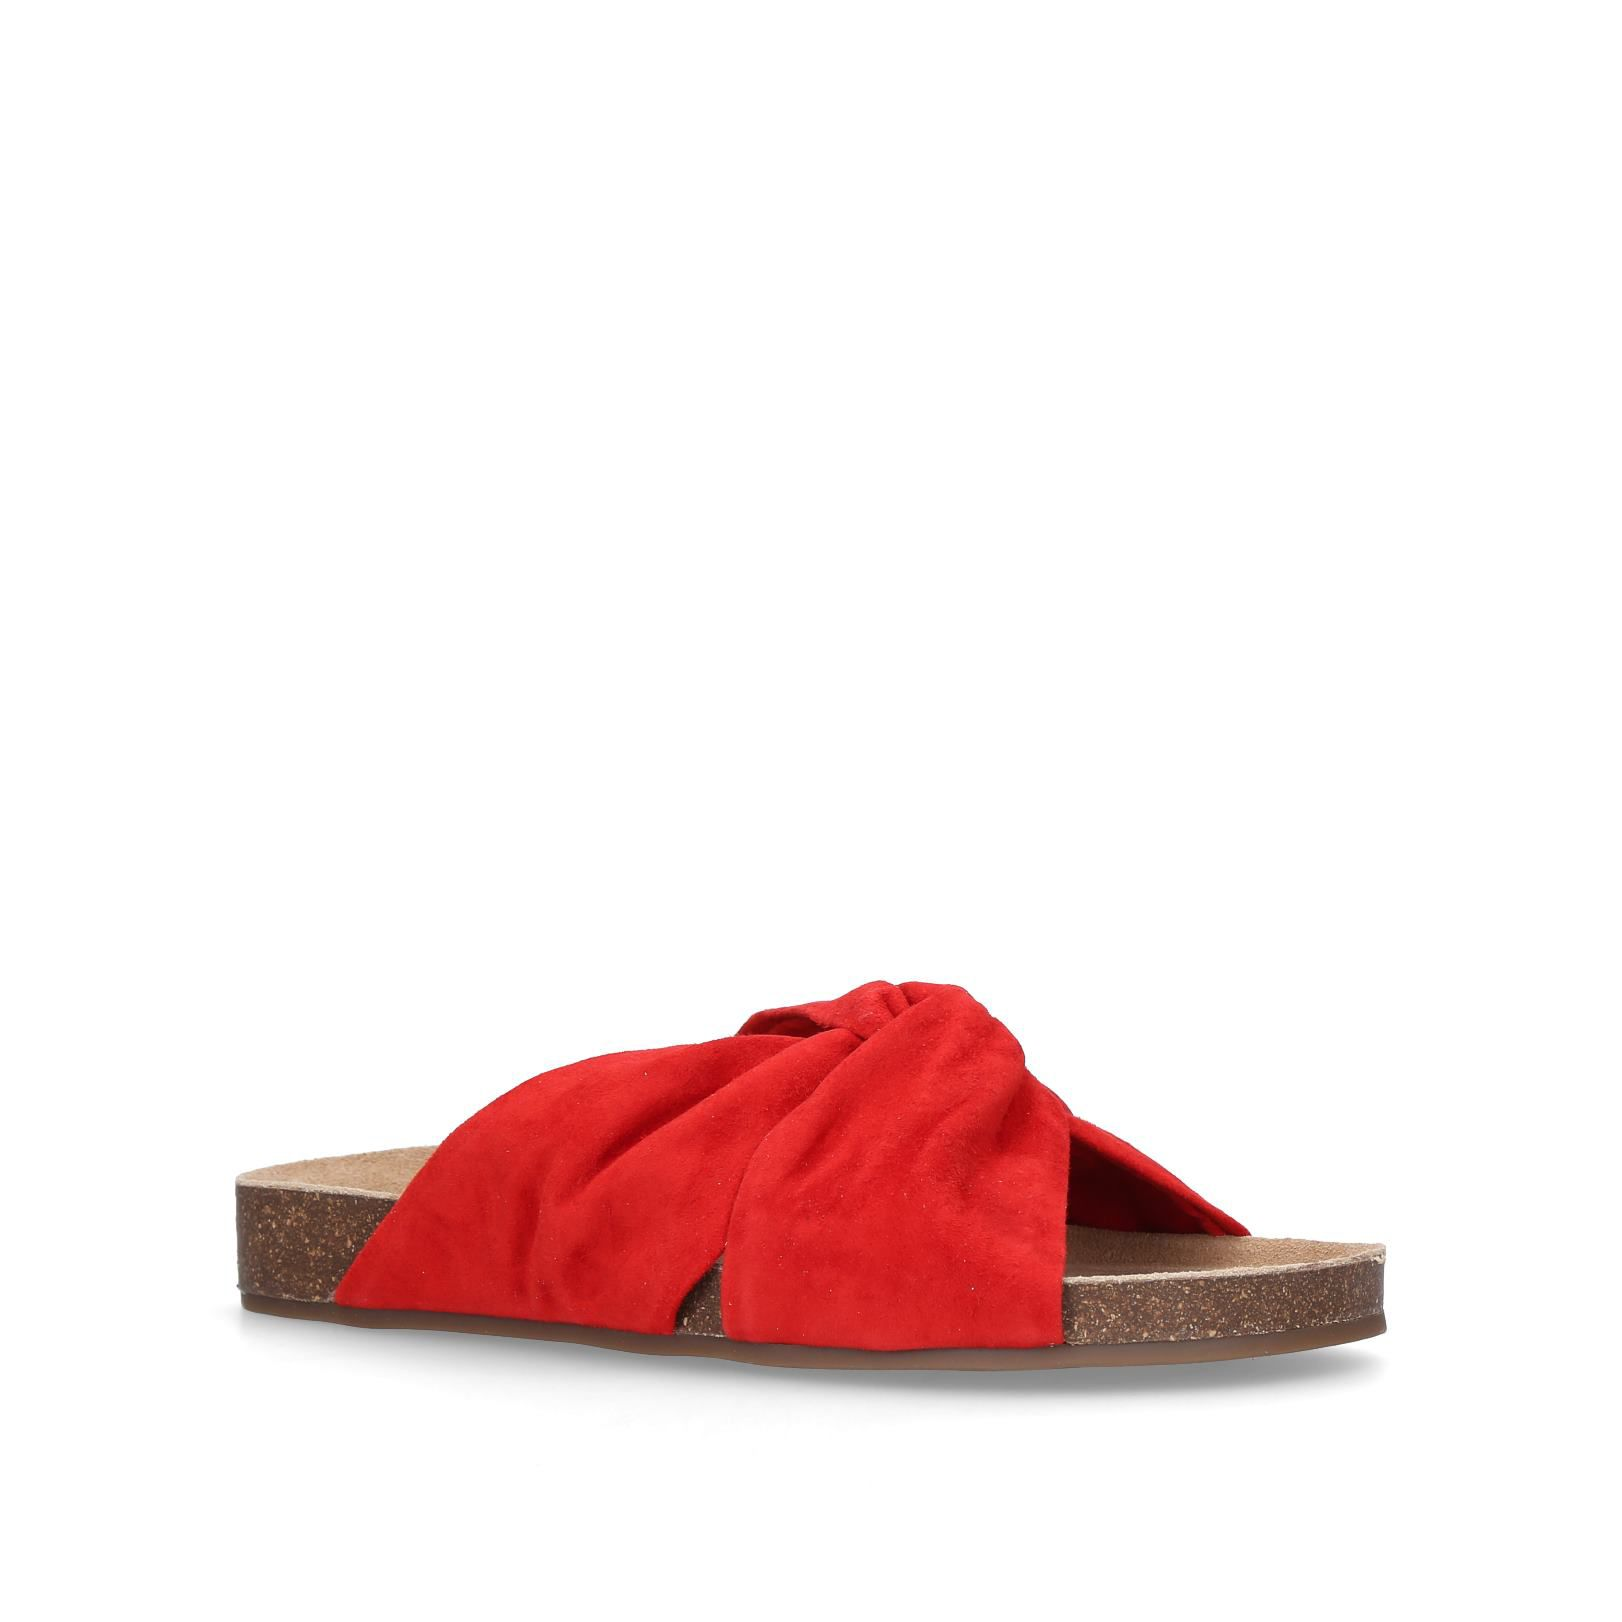 Vince Camuto Biminti Sandals, Red